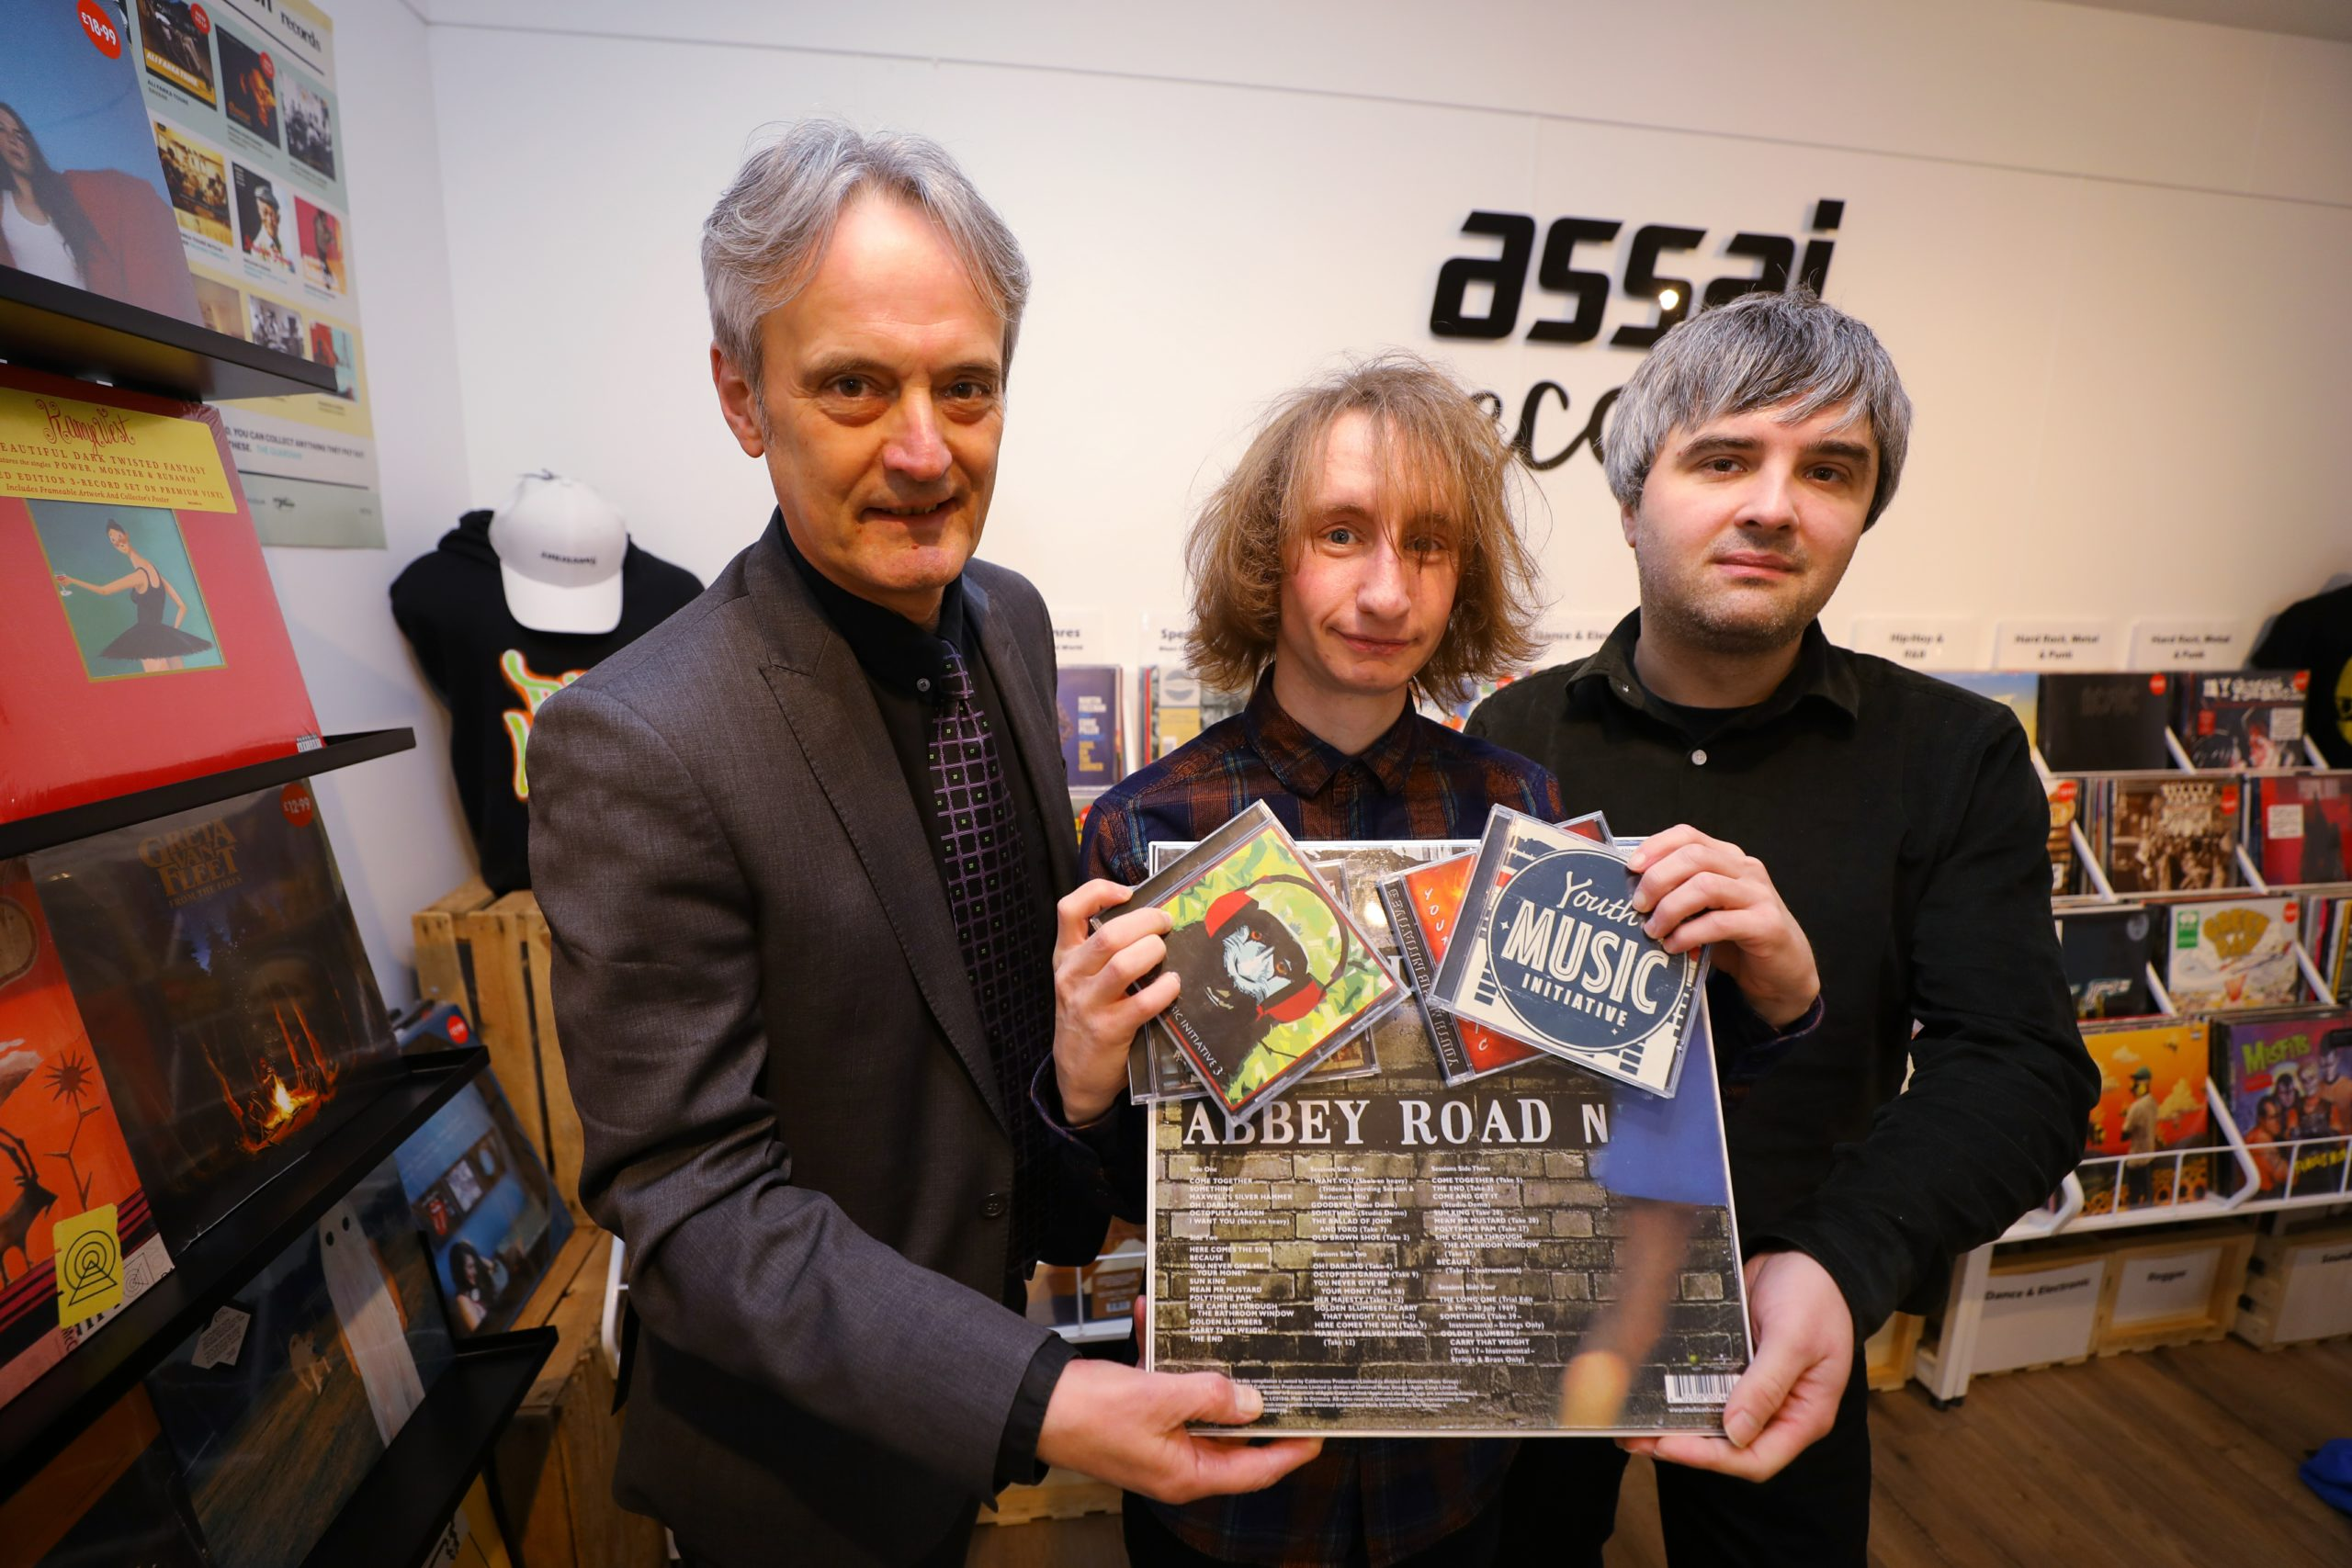 Marley Davidson, with Grant Ritchie, left, Principal of Dundee & Angus College, and Matthew Marra - Shop Manager, in Assai Records.